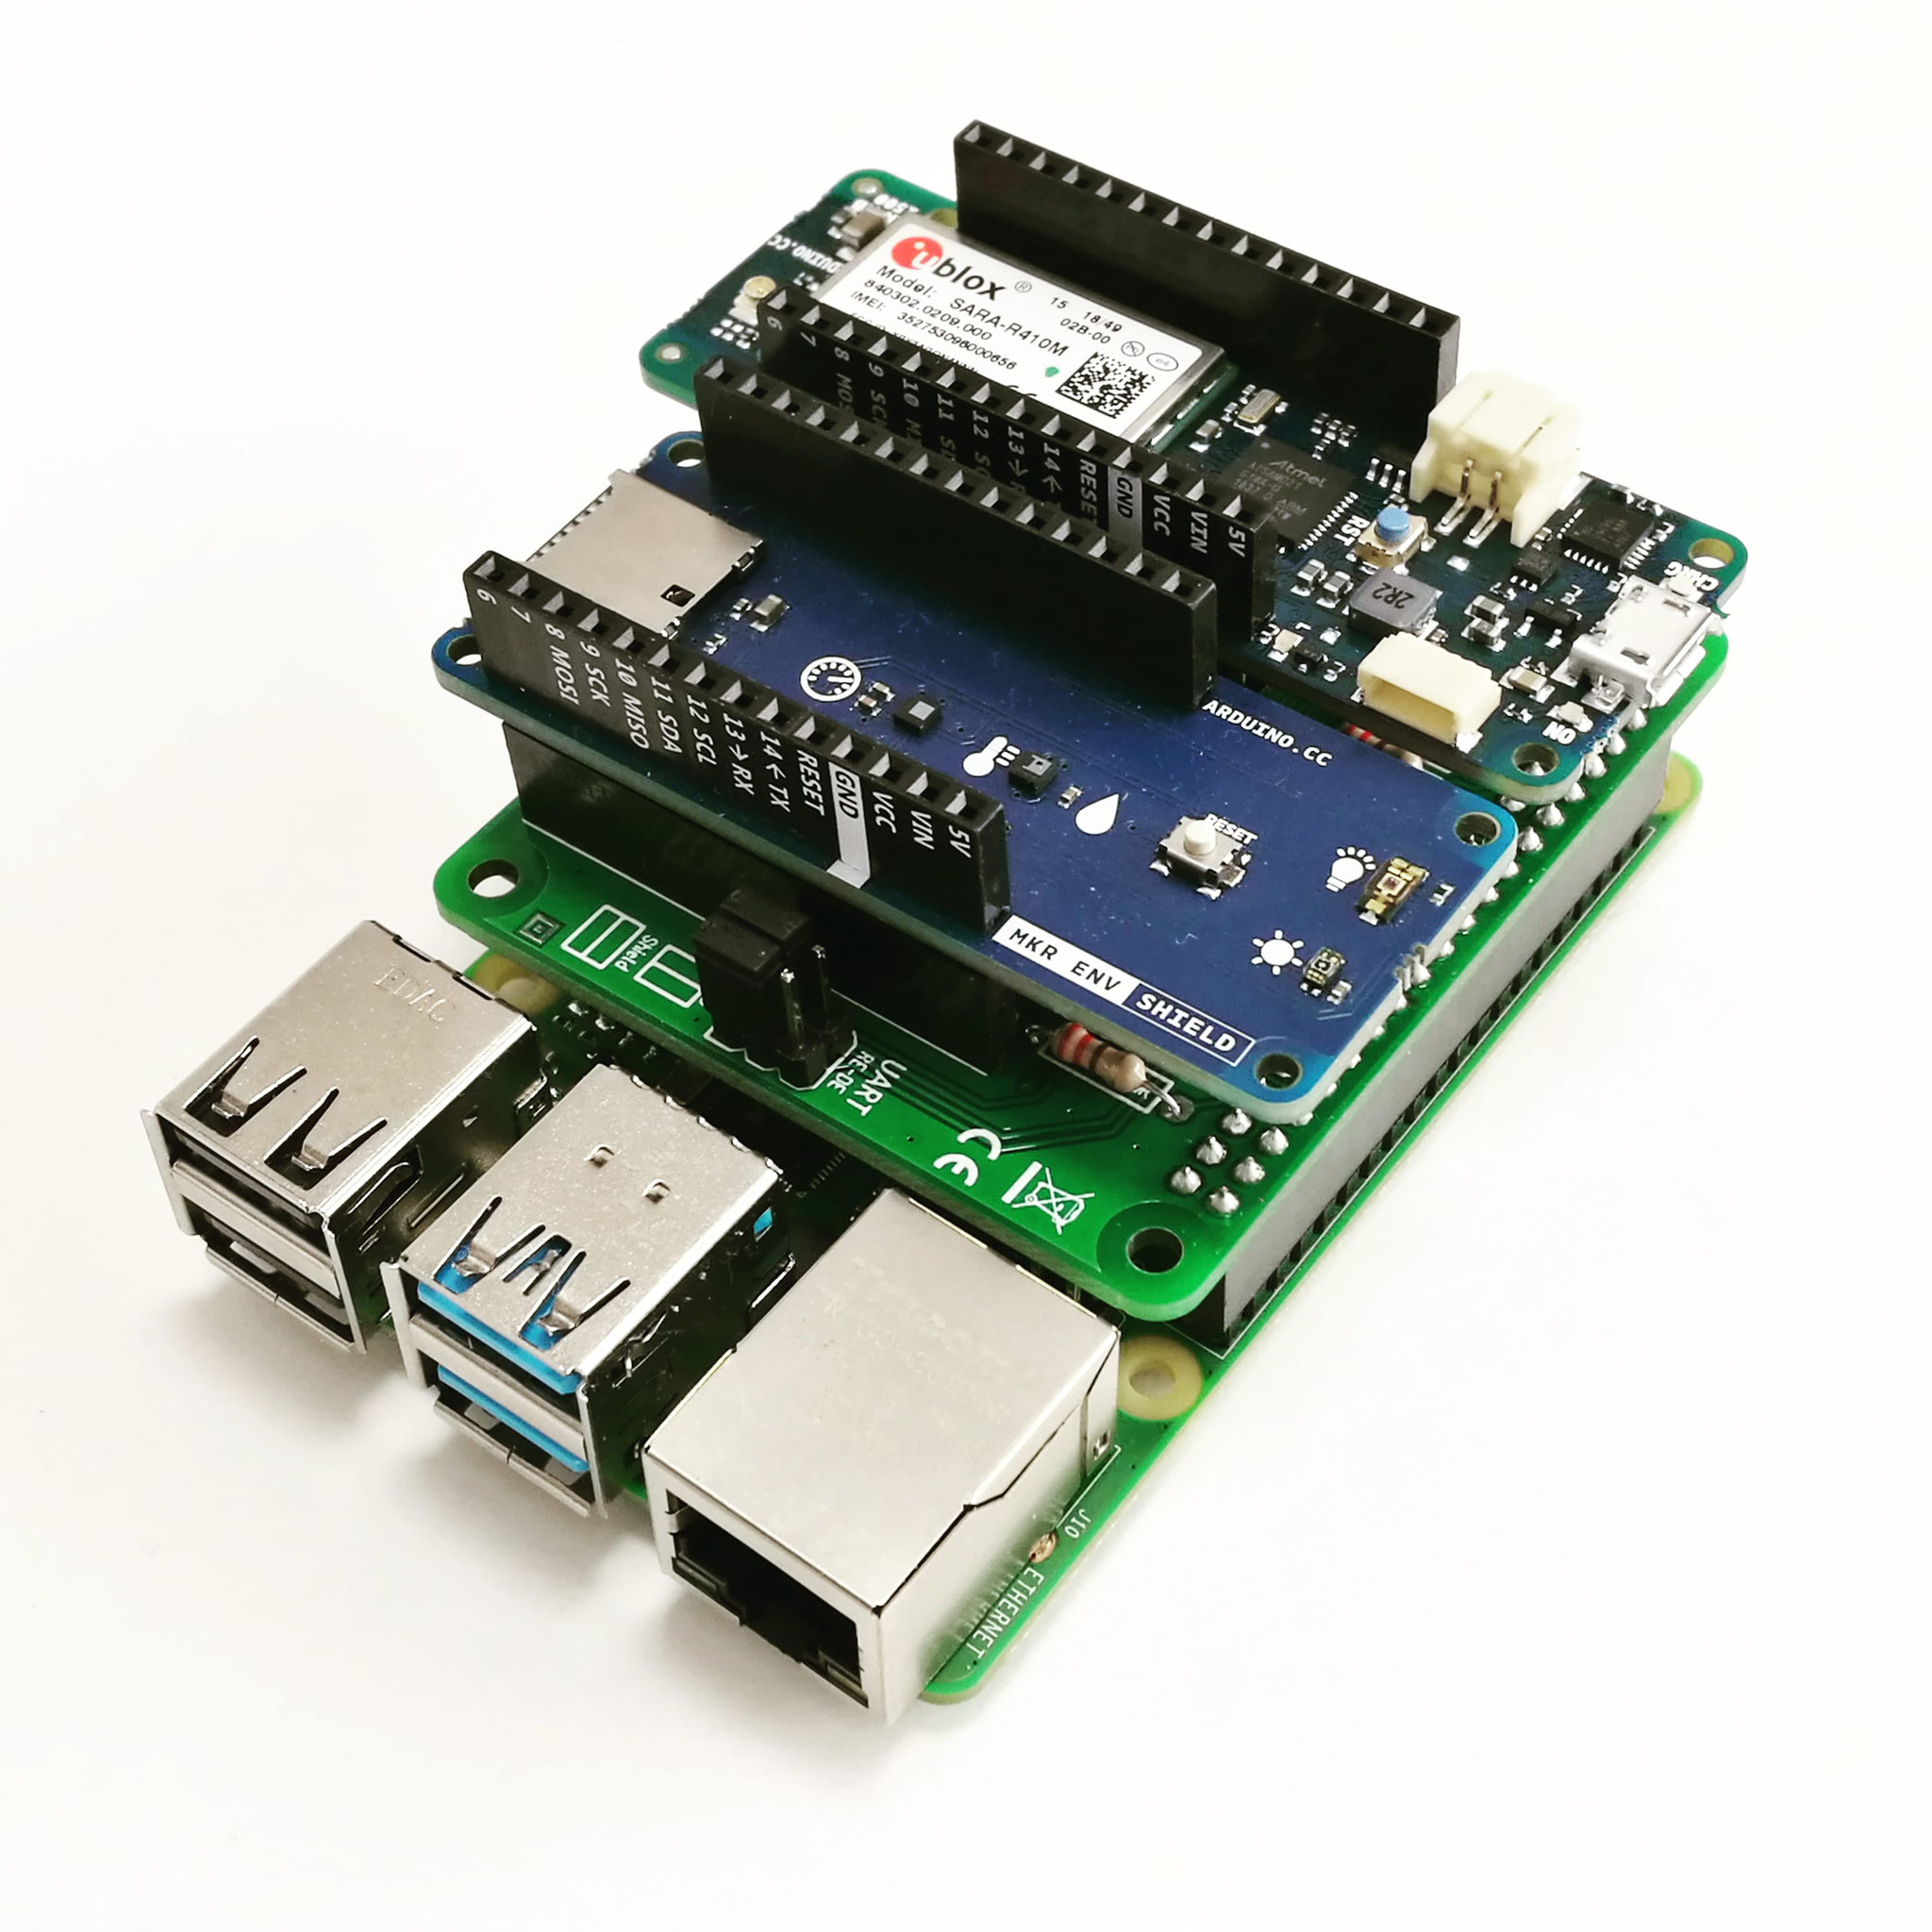 PiMKRHAT with stacked Arduino MKR NB1500 and ENV Shield